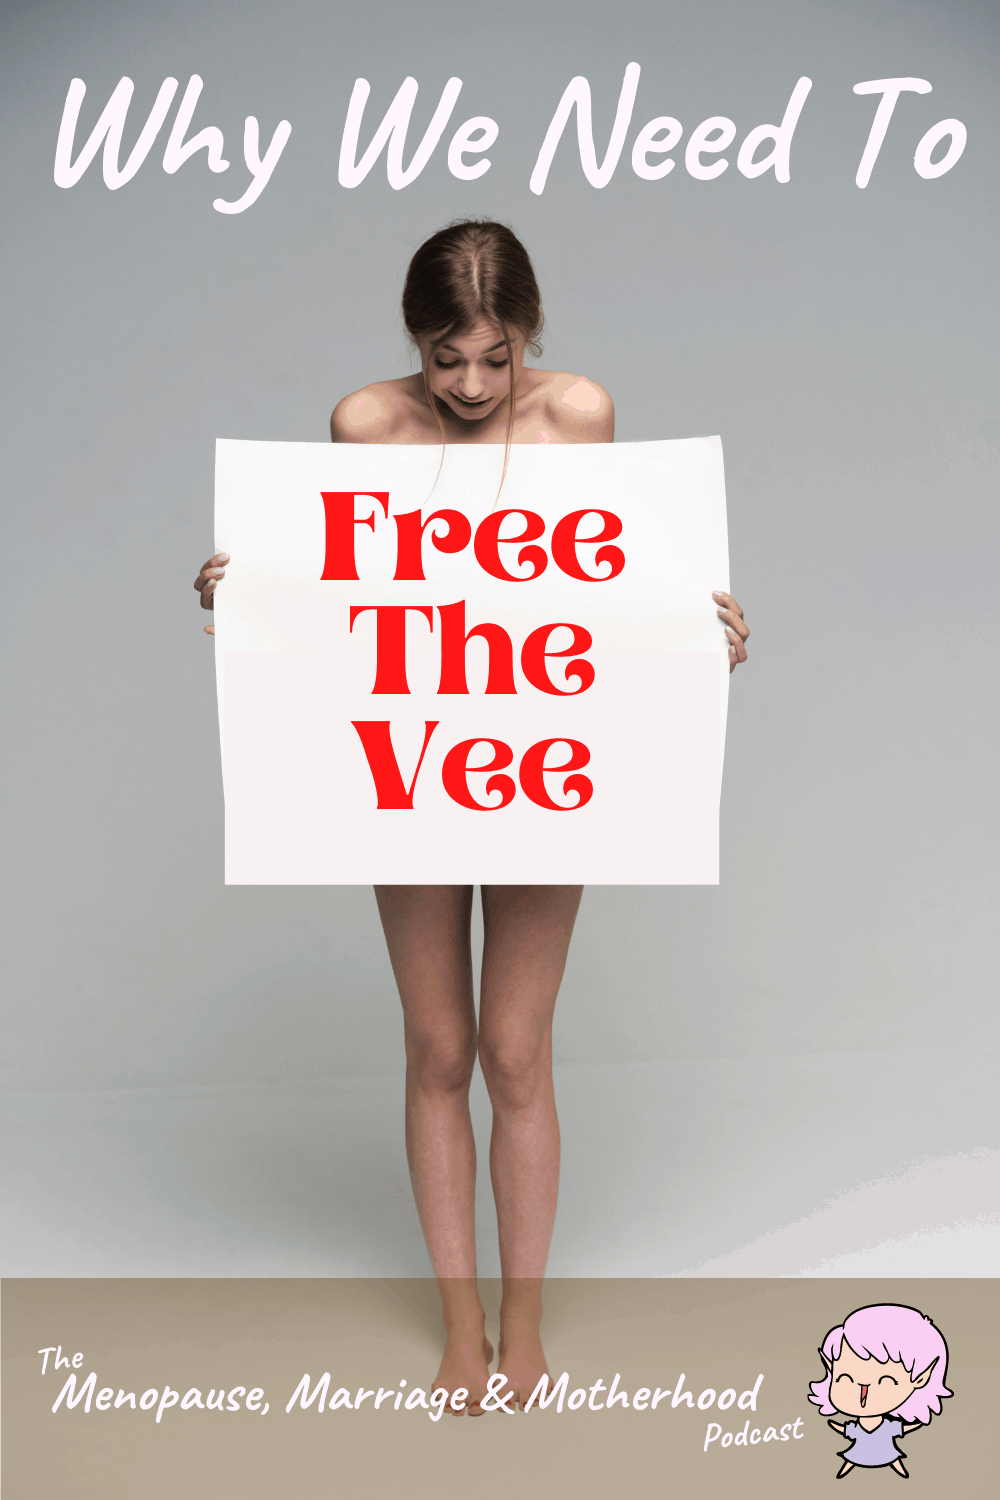 Why We Need To Free The V